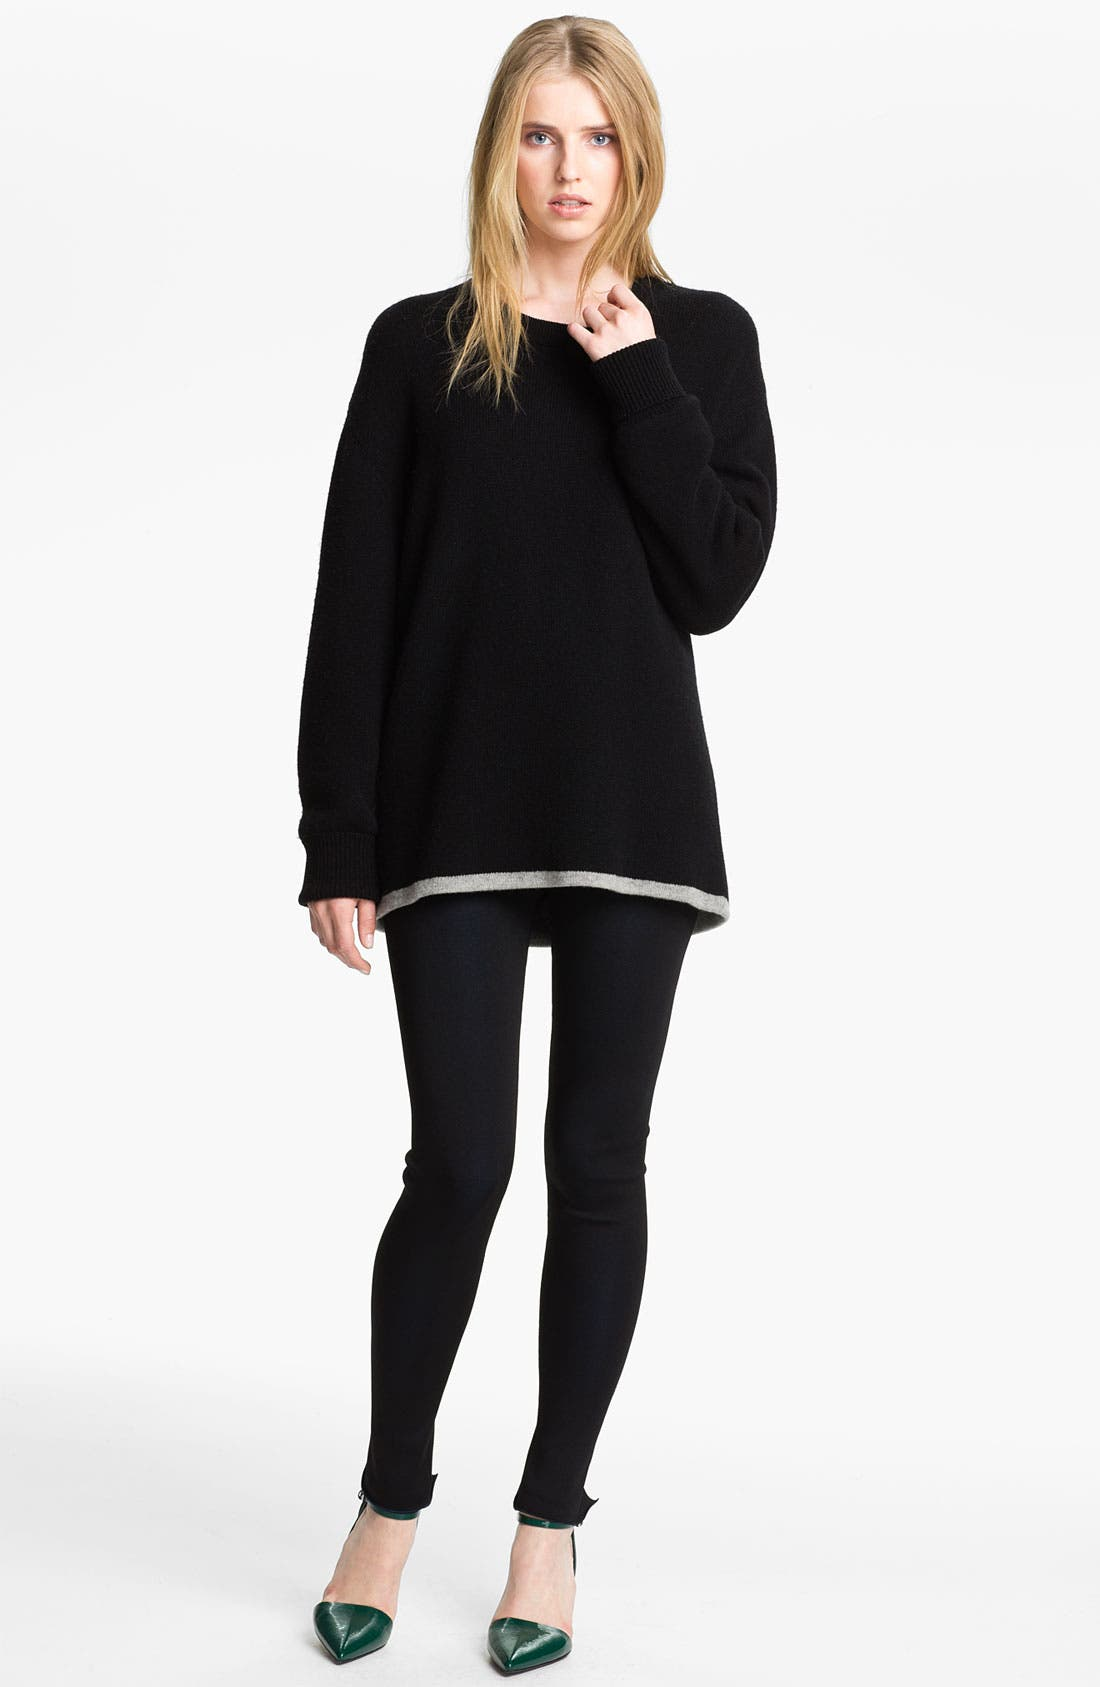 Alternate Image 1 Selected - Alexander Wang Reversible Wool & Cashmere Sweatshirt